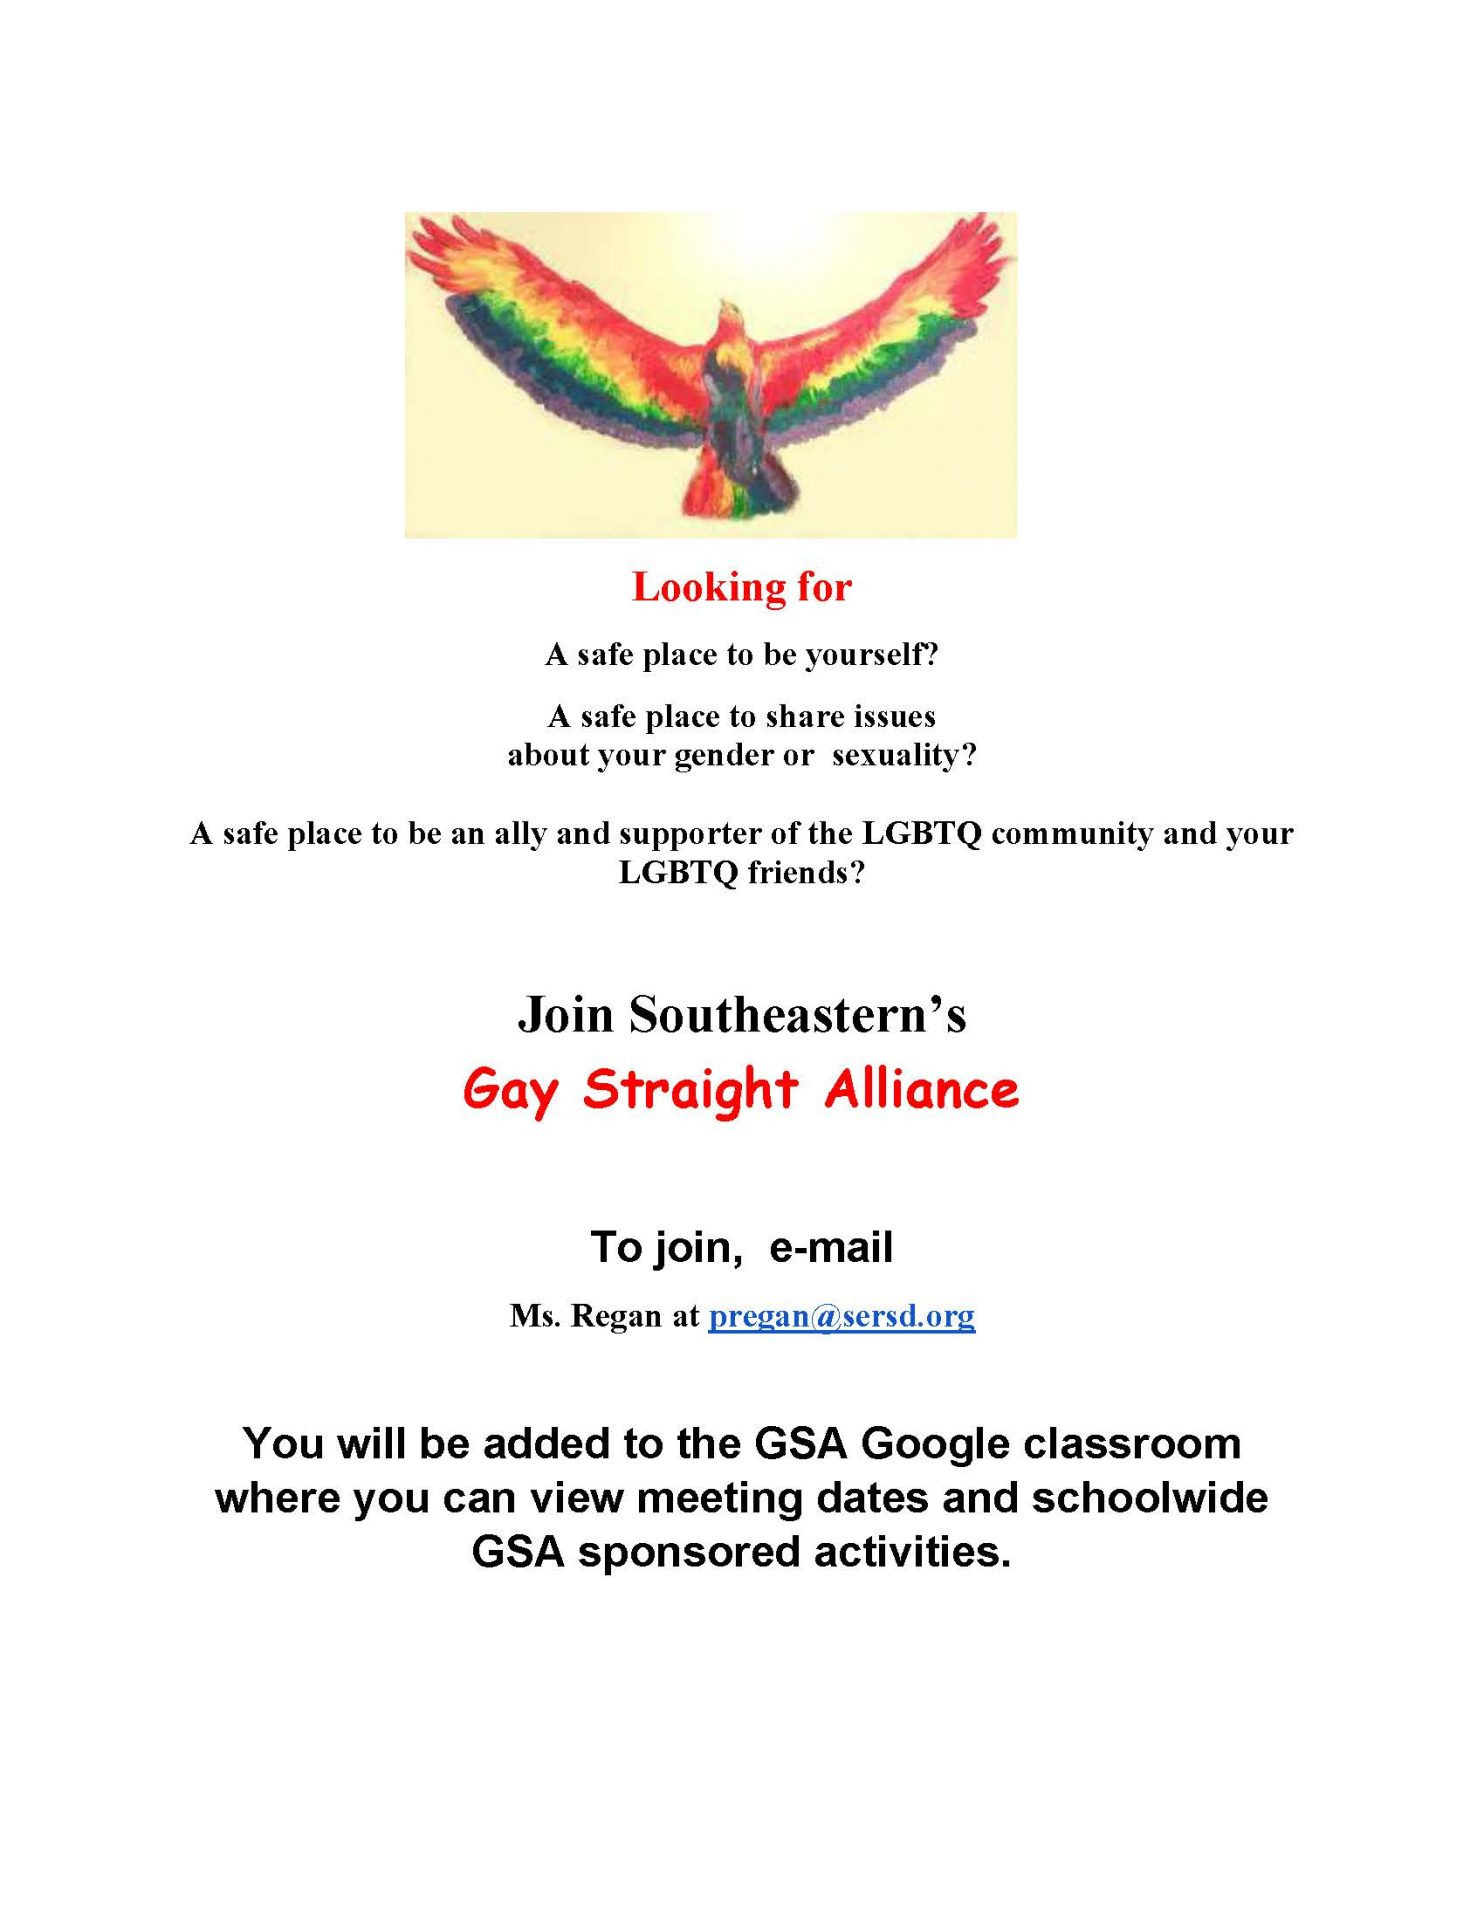 GSA Invitation